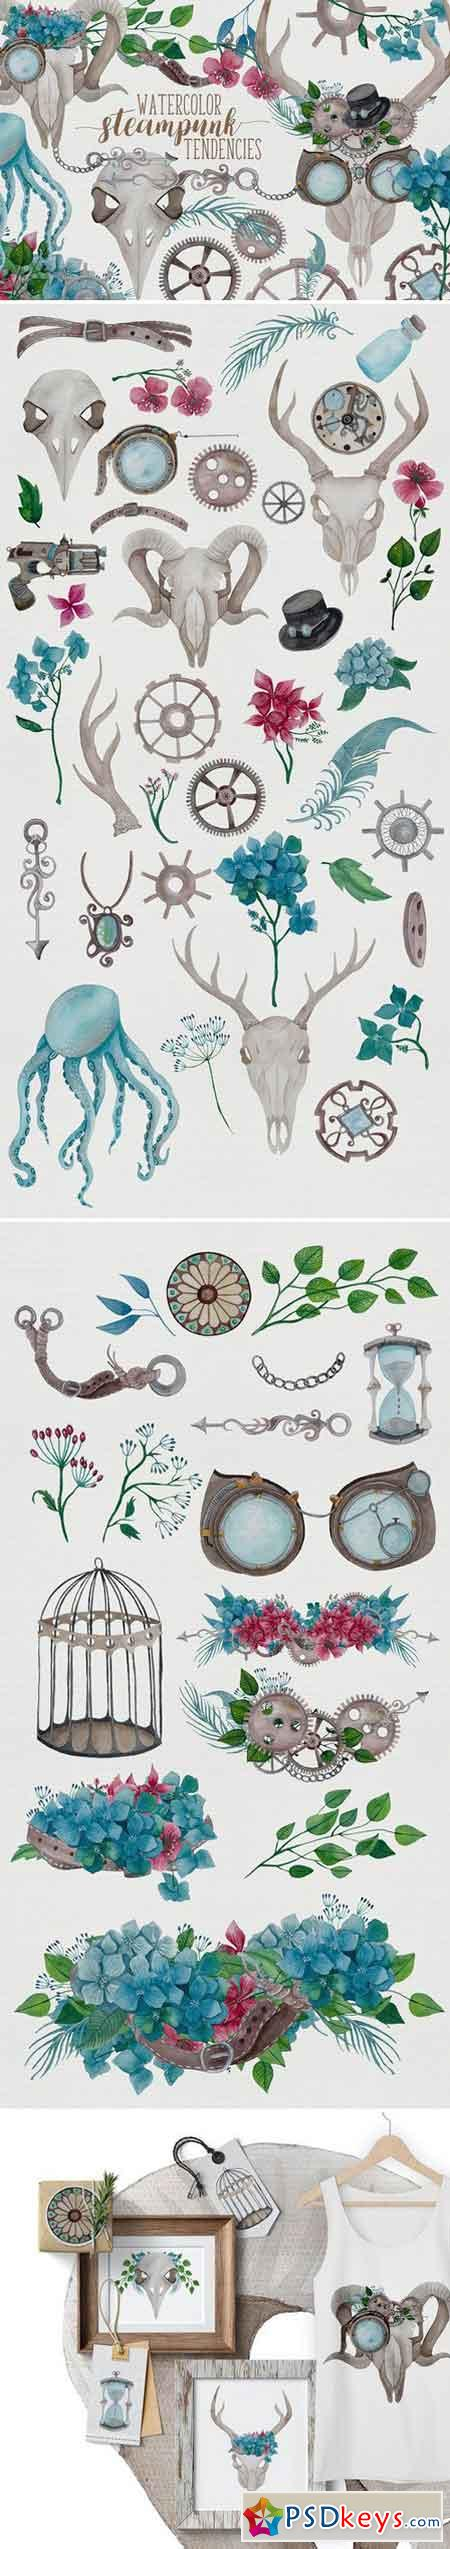 Watercolor Steampunk Graphics 2070866